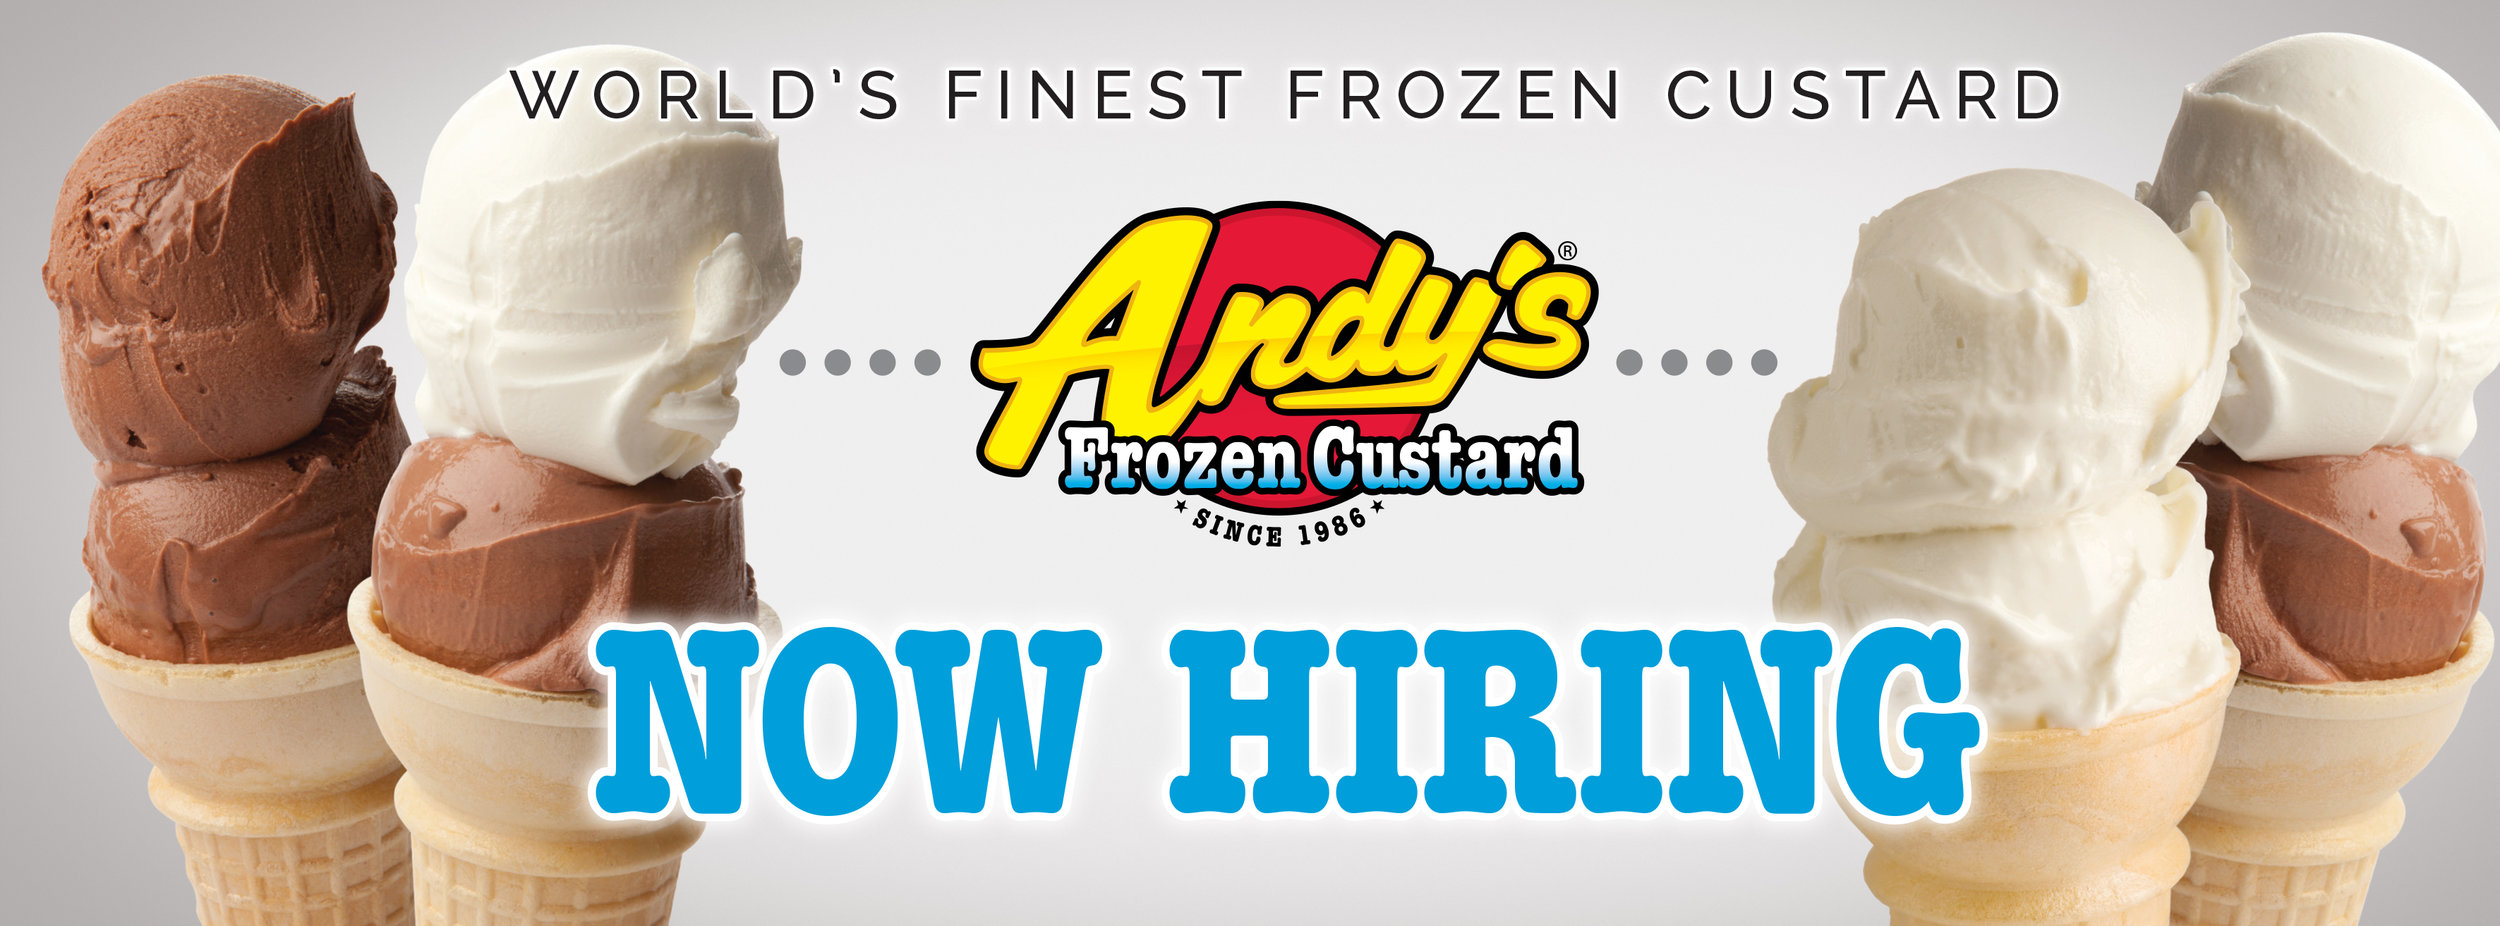 Now Hiring Facebook Cover Photo Image